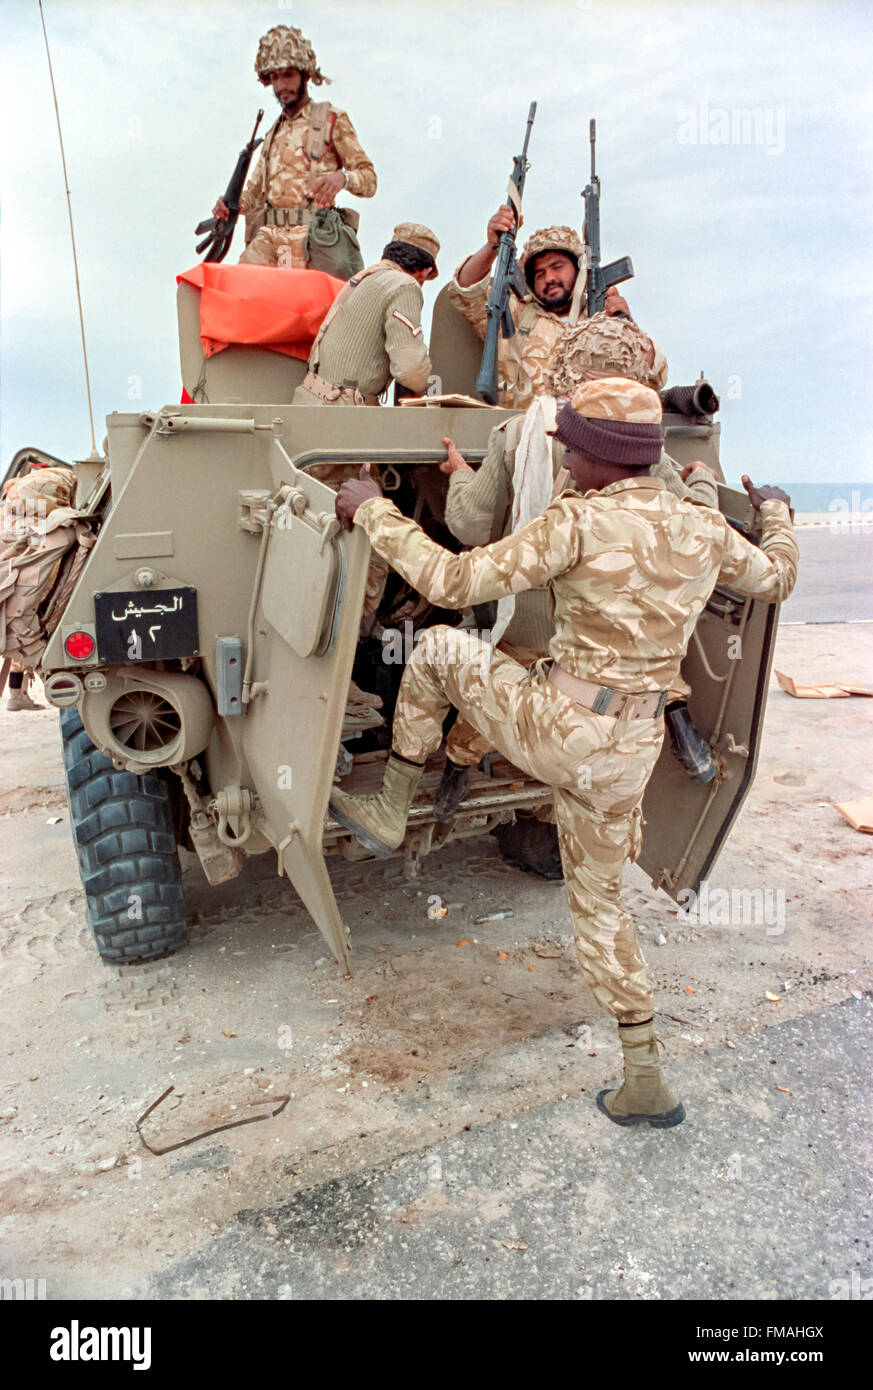 Saudi Arabian soldiers load into an armored personnel carrier during clean up operations following the Battle of - Stock Image